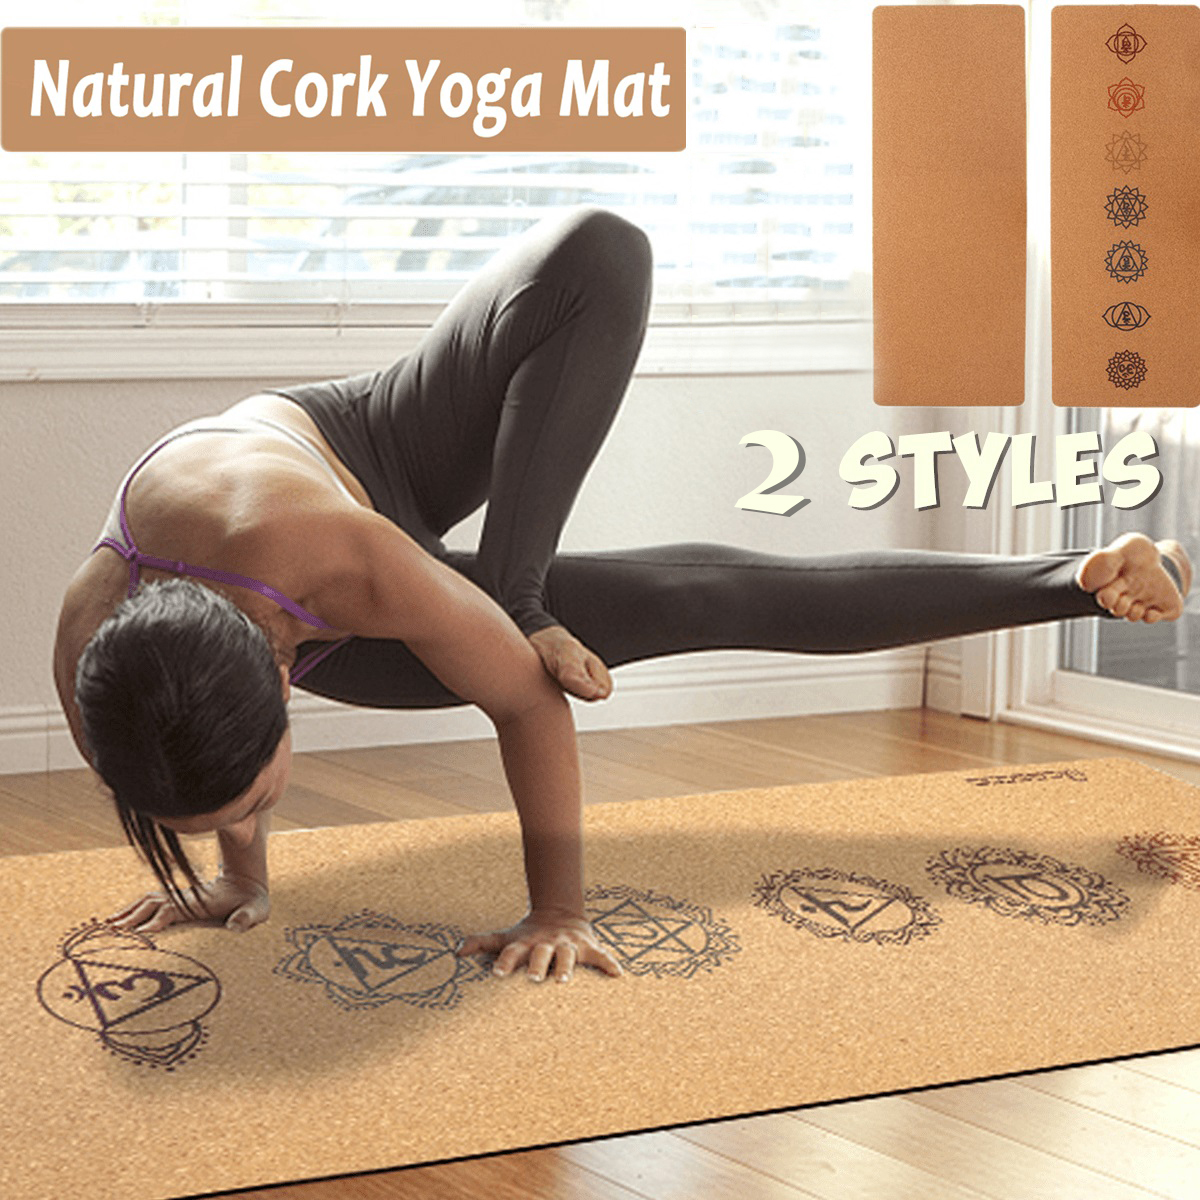 Cork Yoga Mat  Natural  Cork  rubber Yoga Mat Fitness Gymnastics Pilates Free shipment from us warehouse